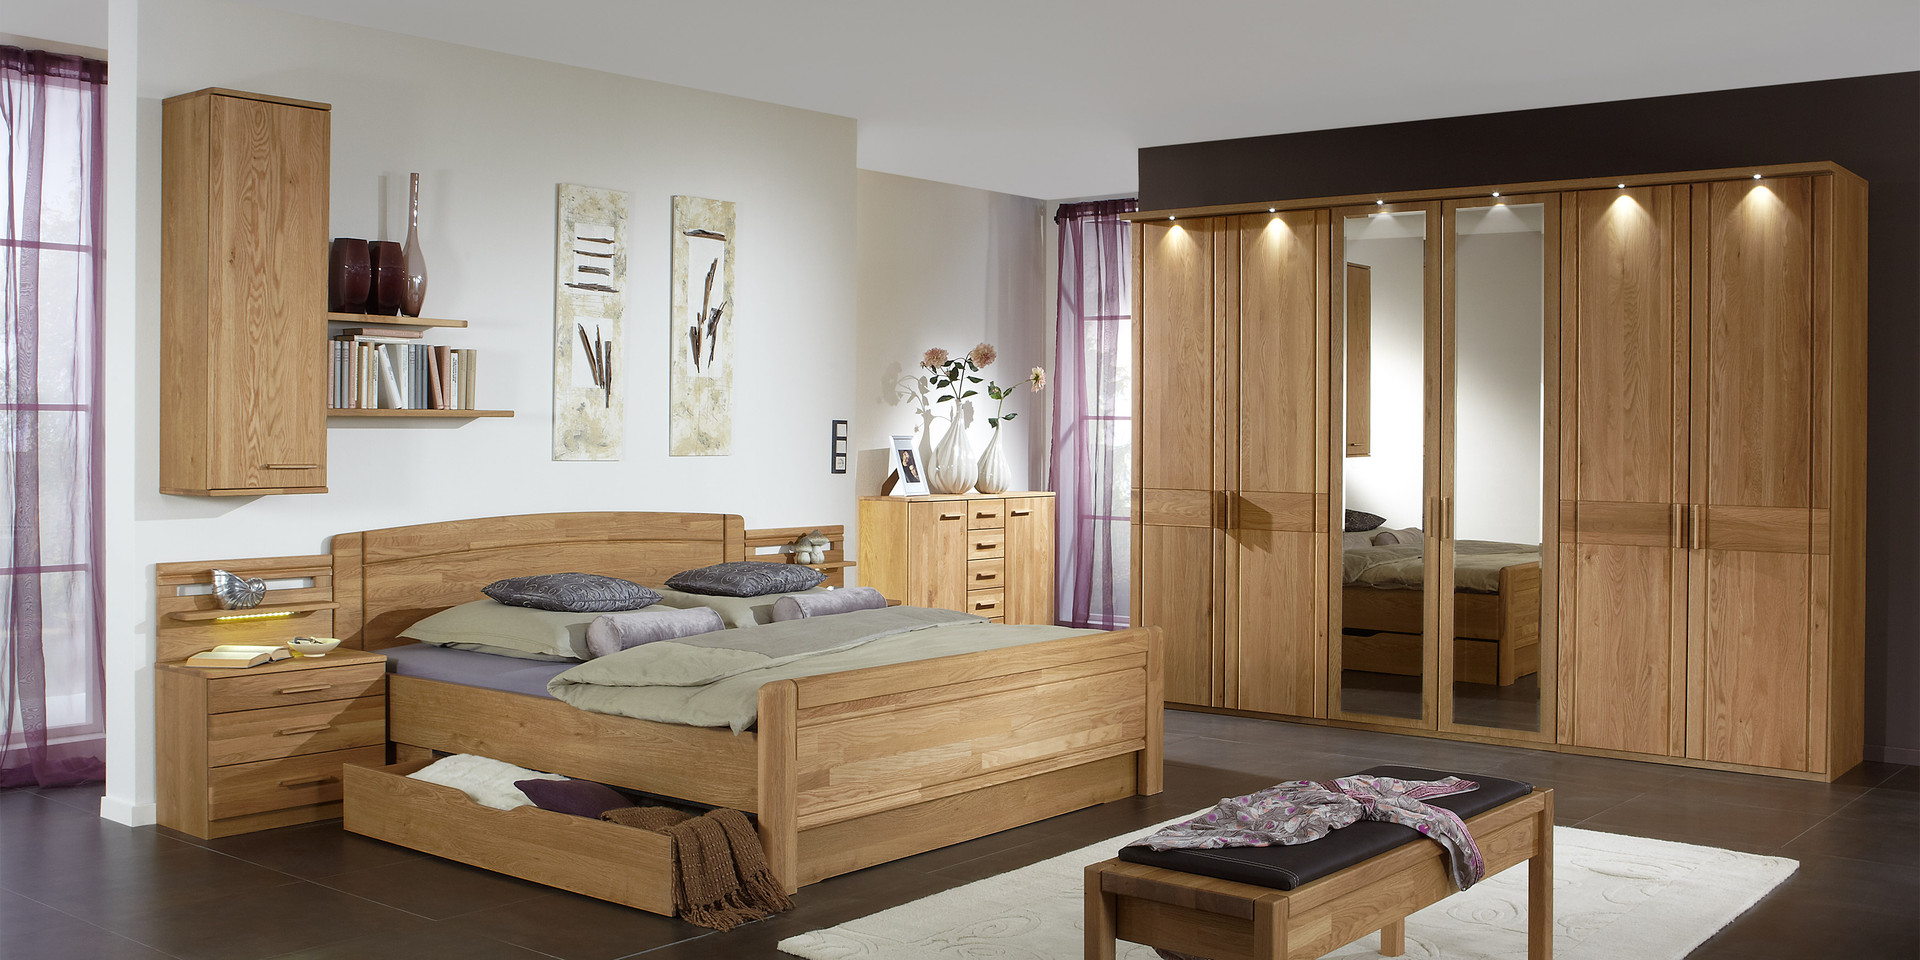 erleben sie das schlafzimmer m nster m belhersteller wiemann. Black Bedroom Furniture Sets. Home Design Ideas